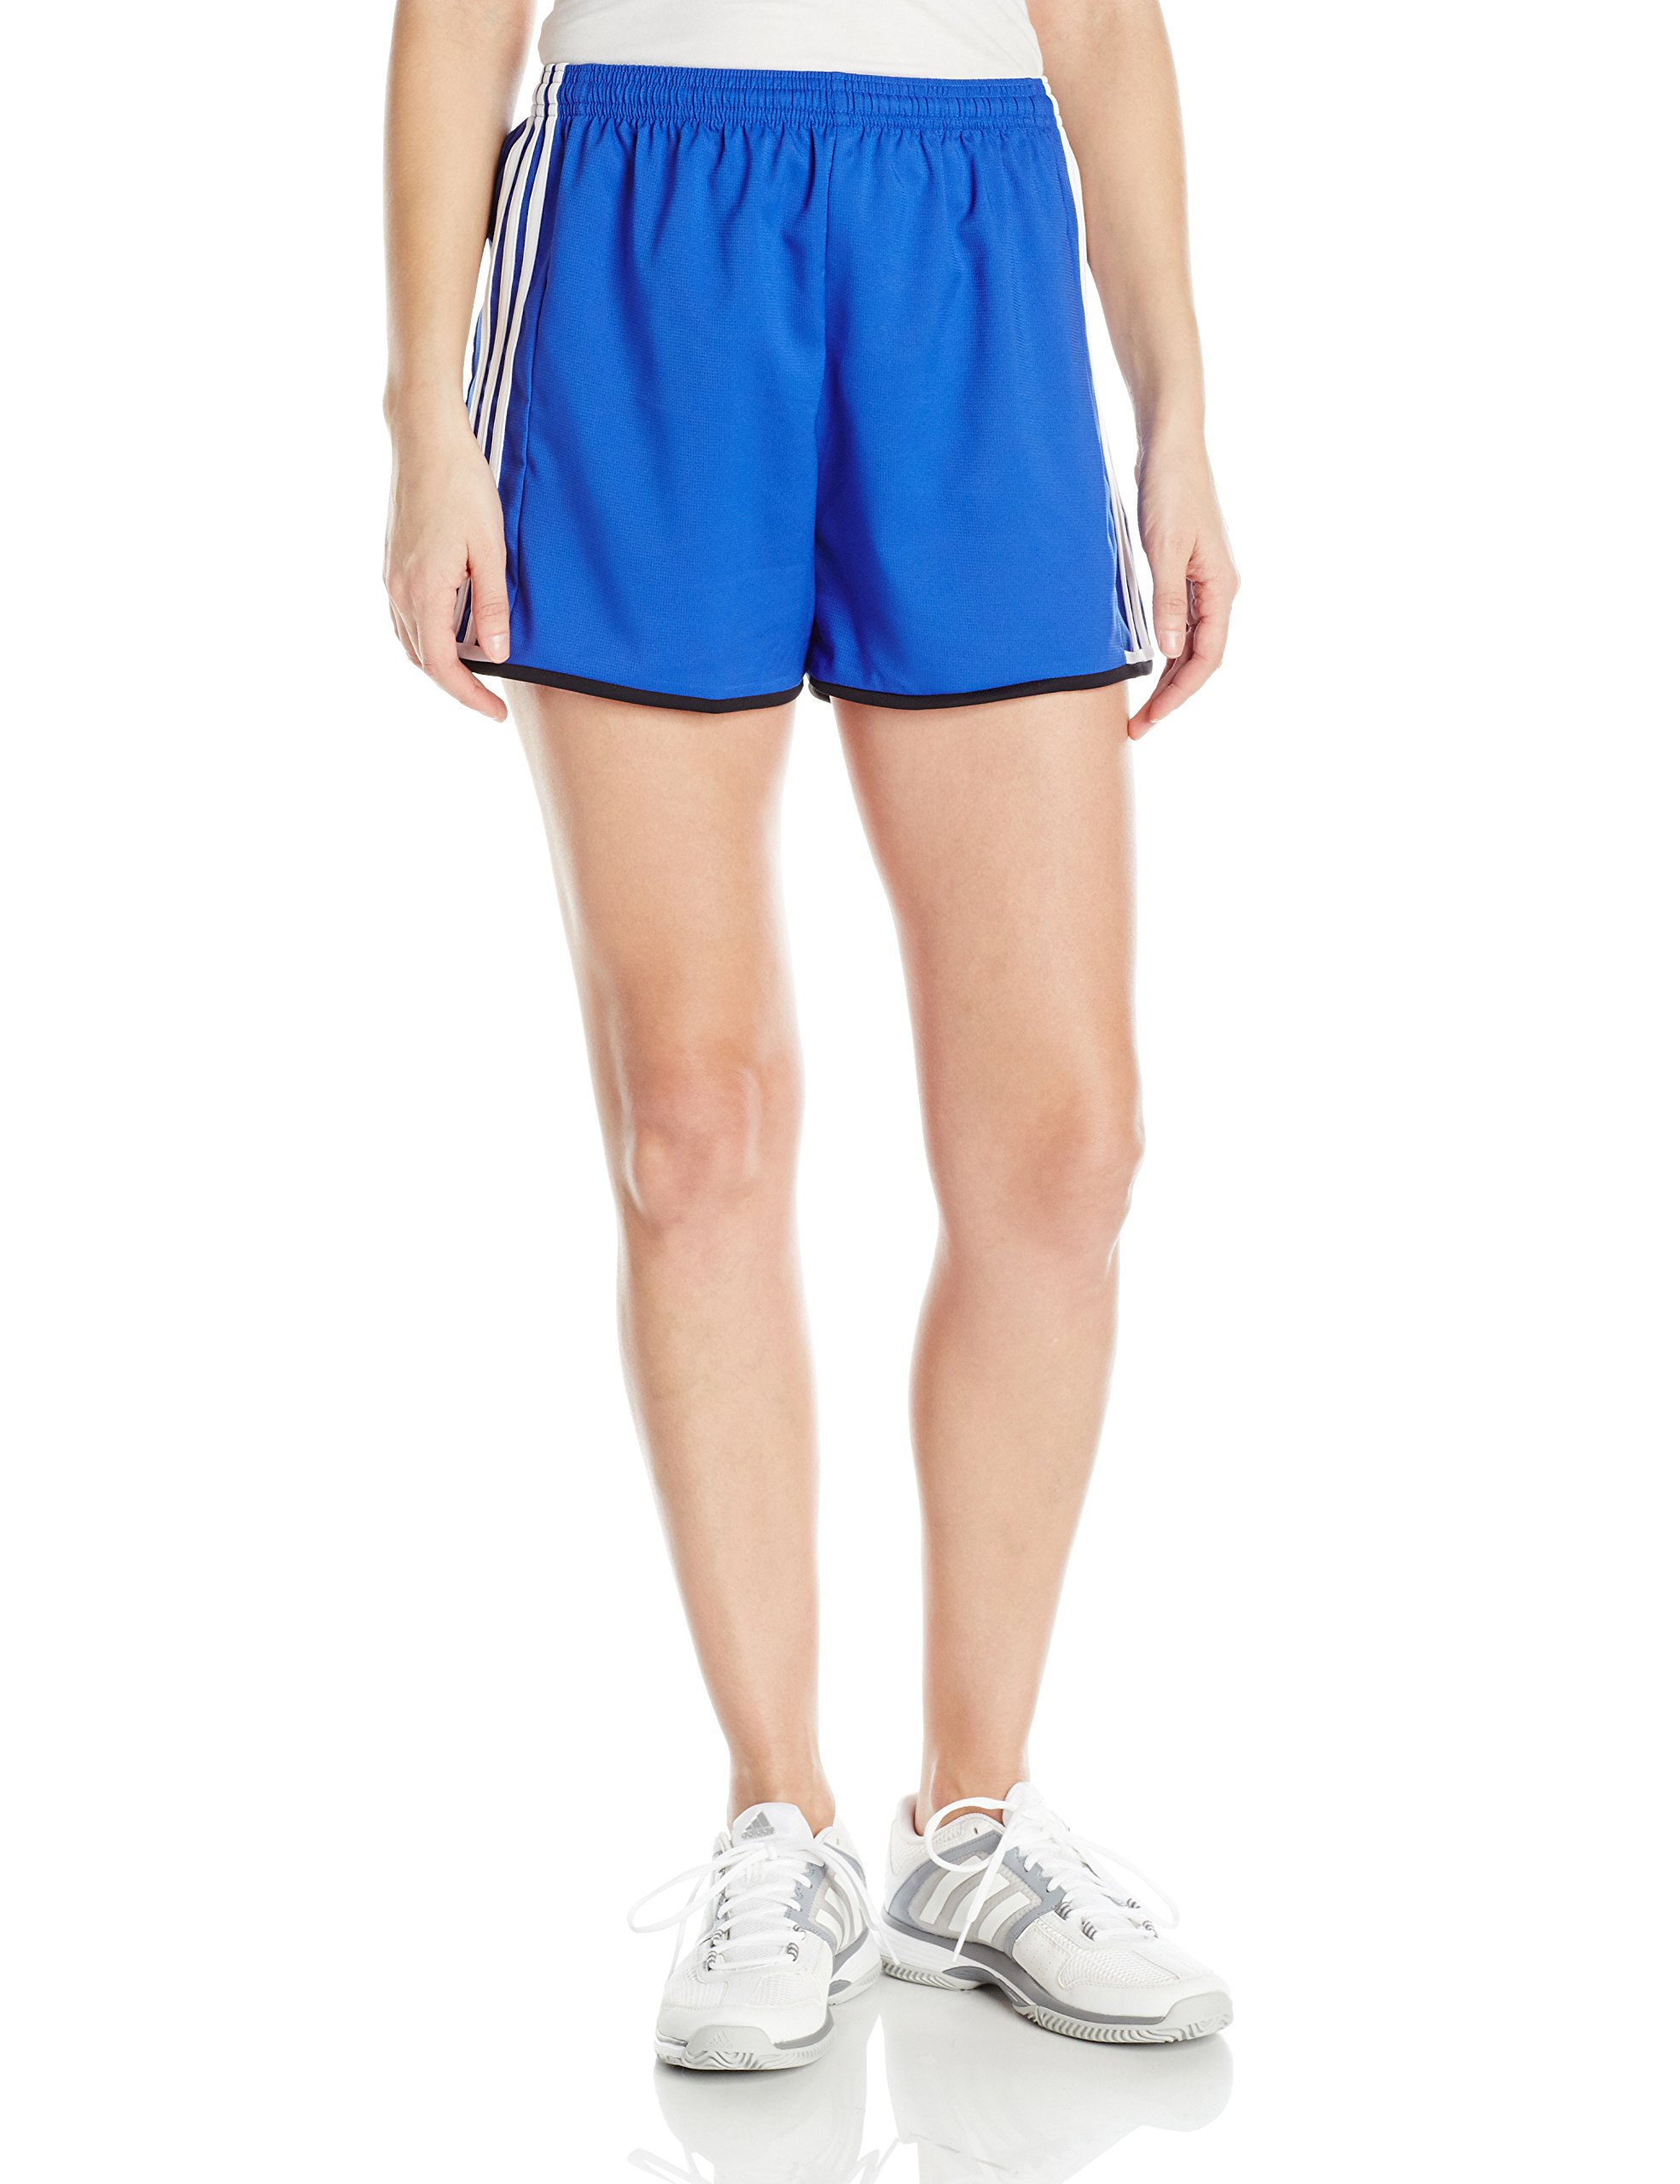 adidas Women's Soccer Condivo 16 Shorts, Bold Blue/White, Small by adidas